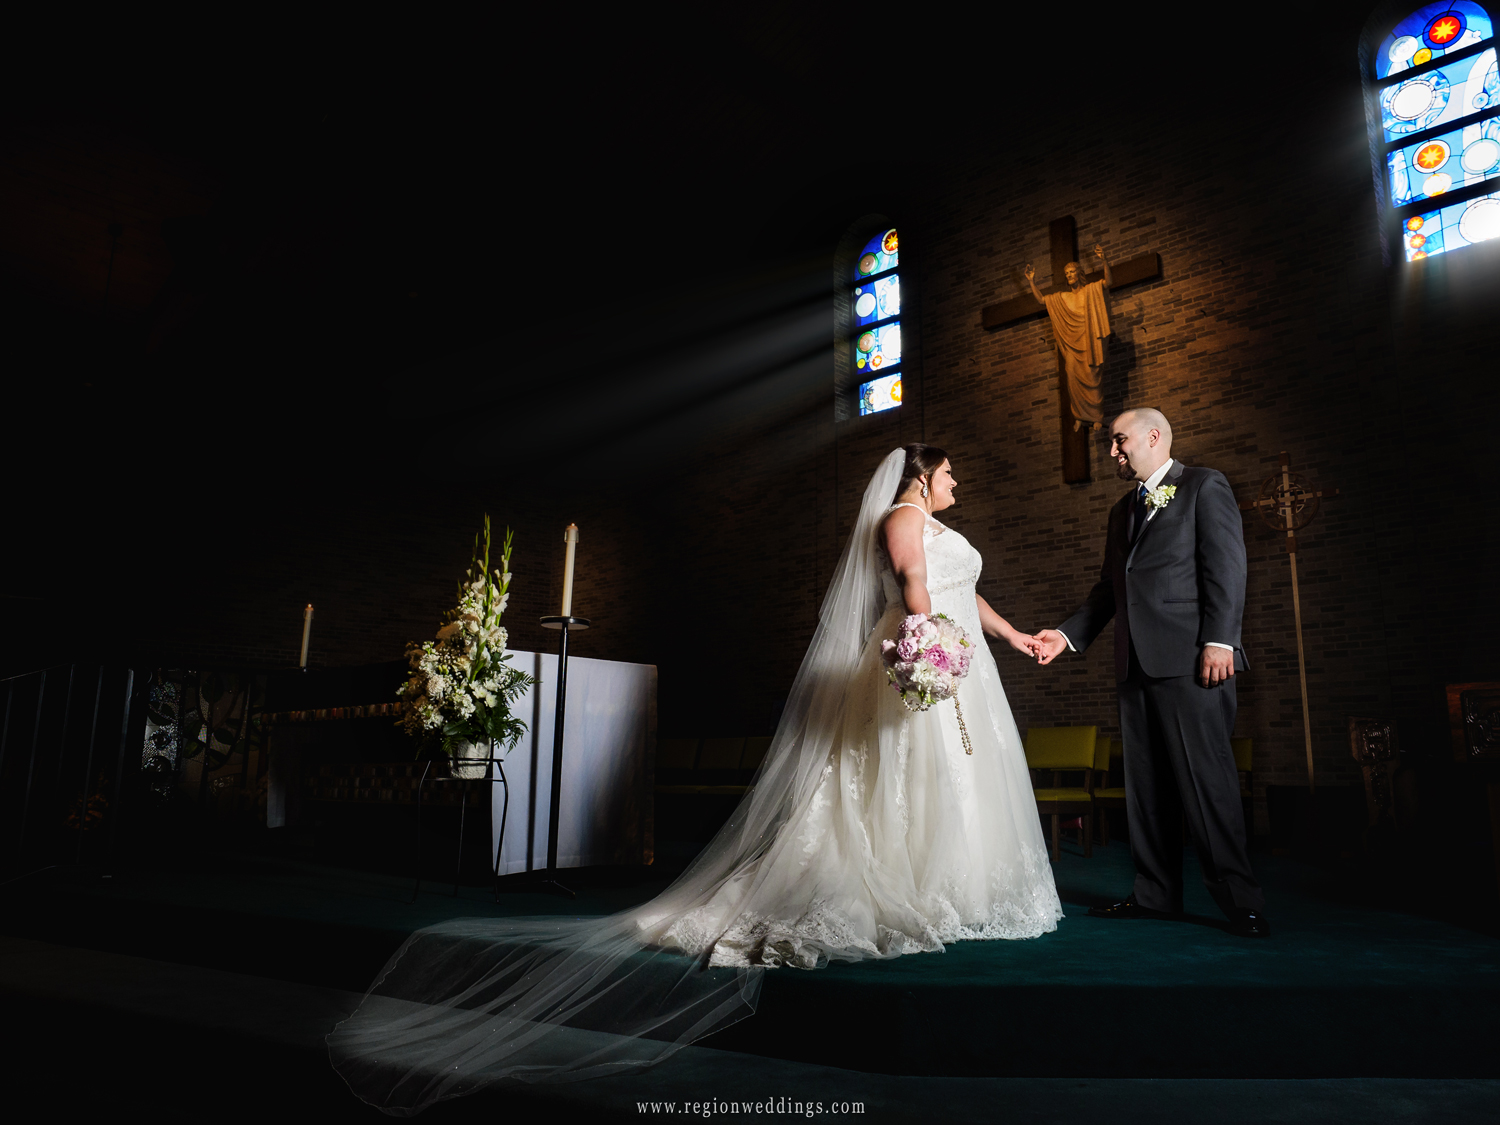 Bride and groom on the altar as light streams in through stained glass windows.